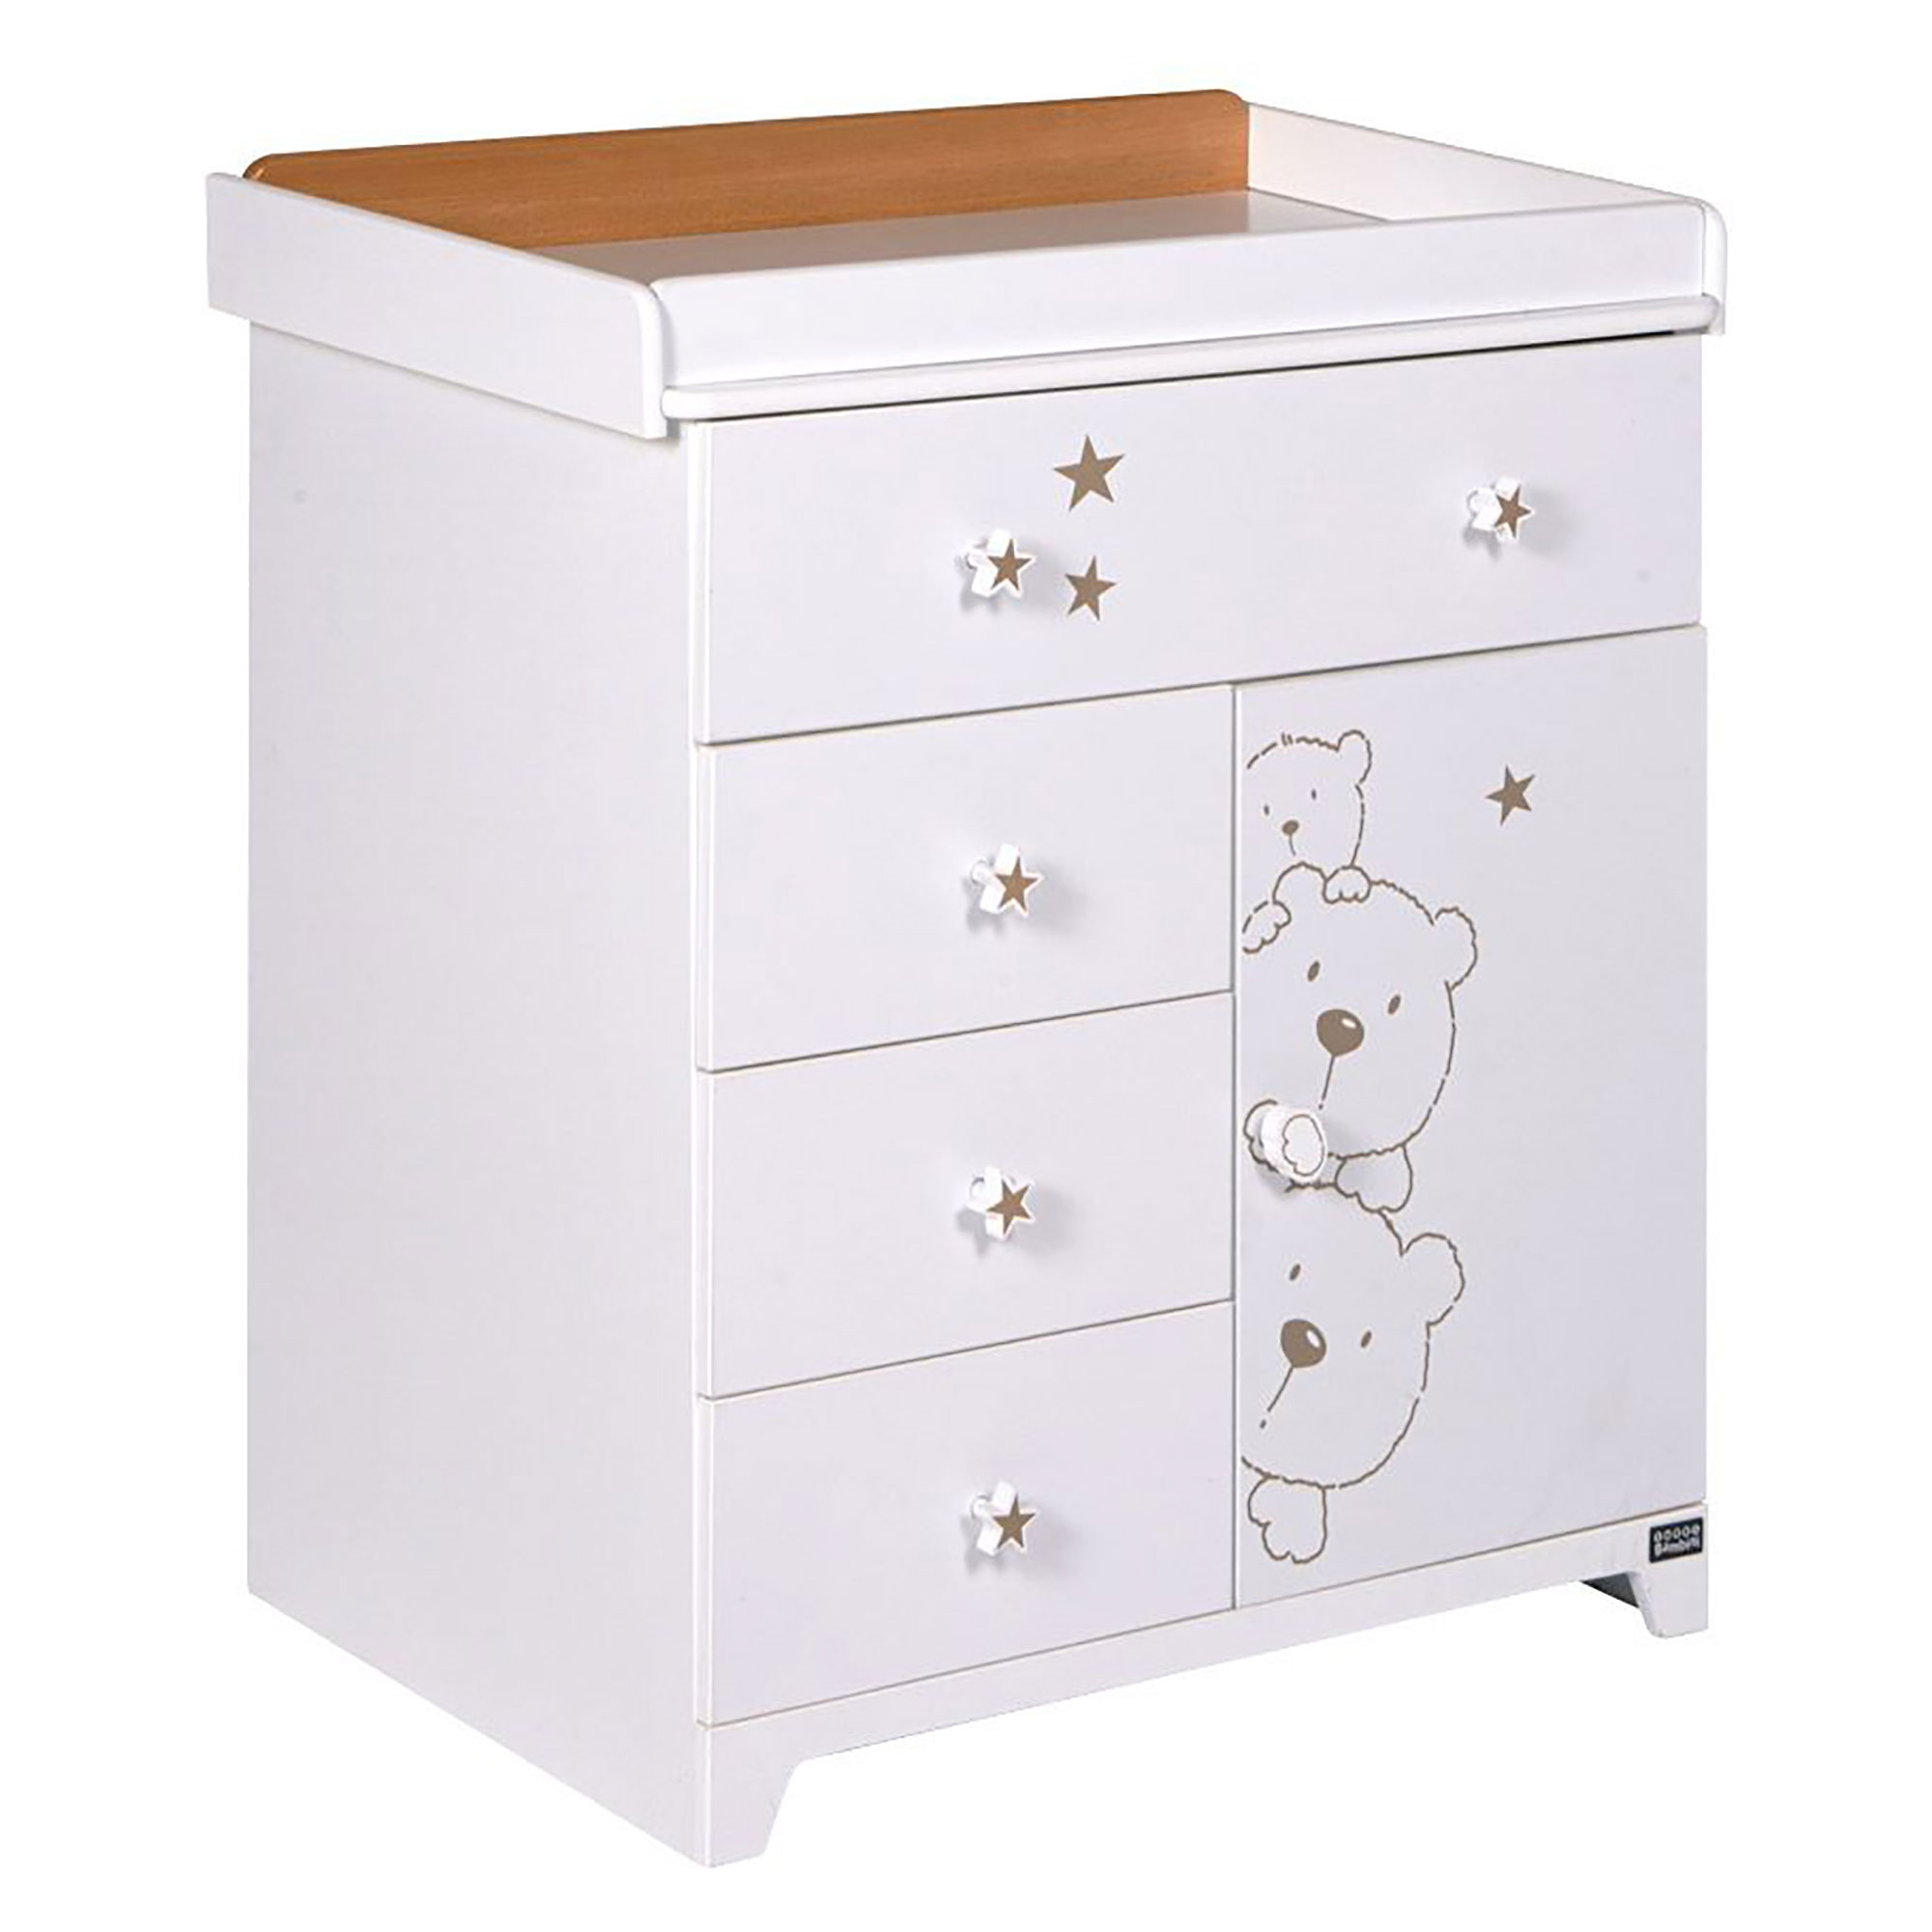 Details About Tutti Bambini 3 Bears Chest Drawers Baby Changer Nursery Furniture Beech White